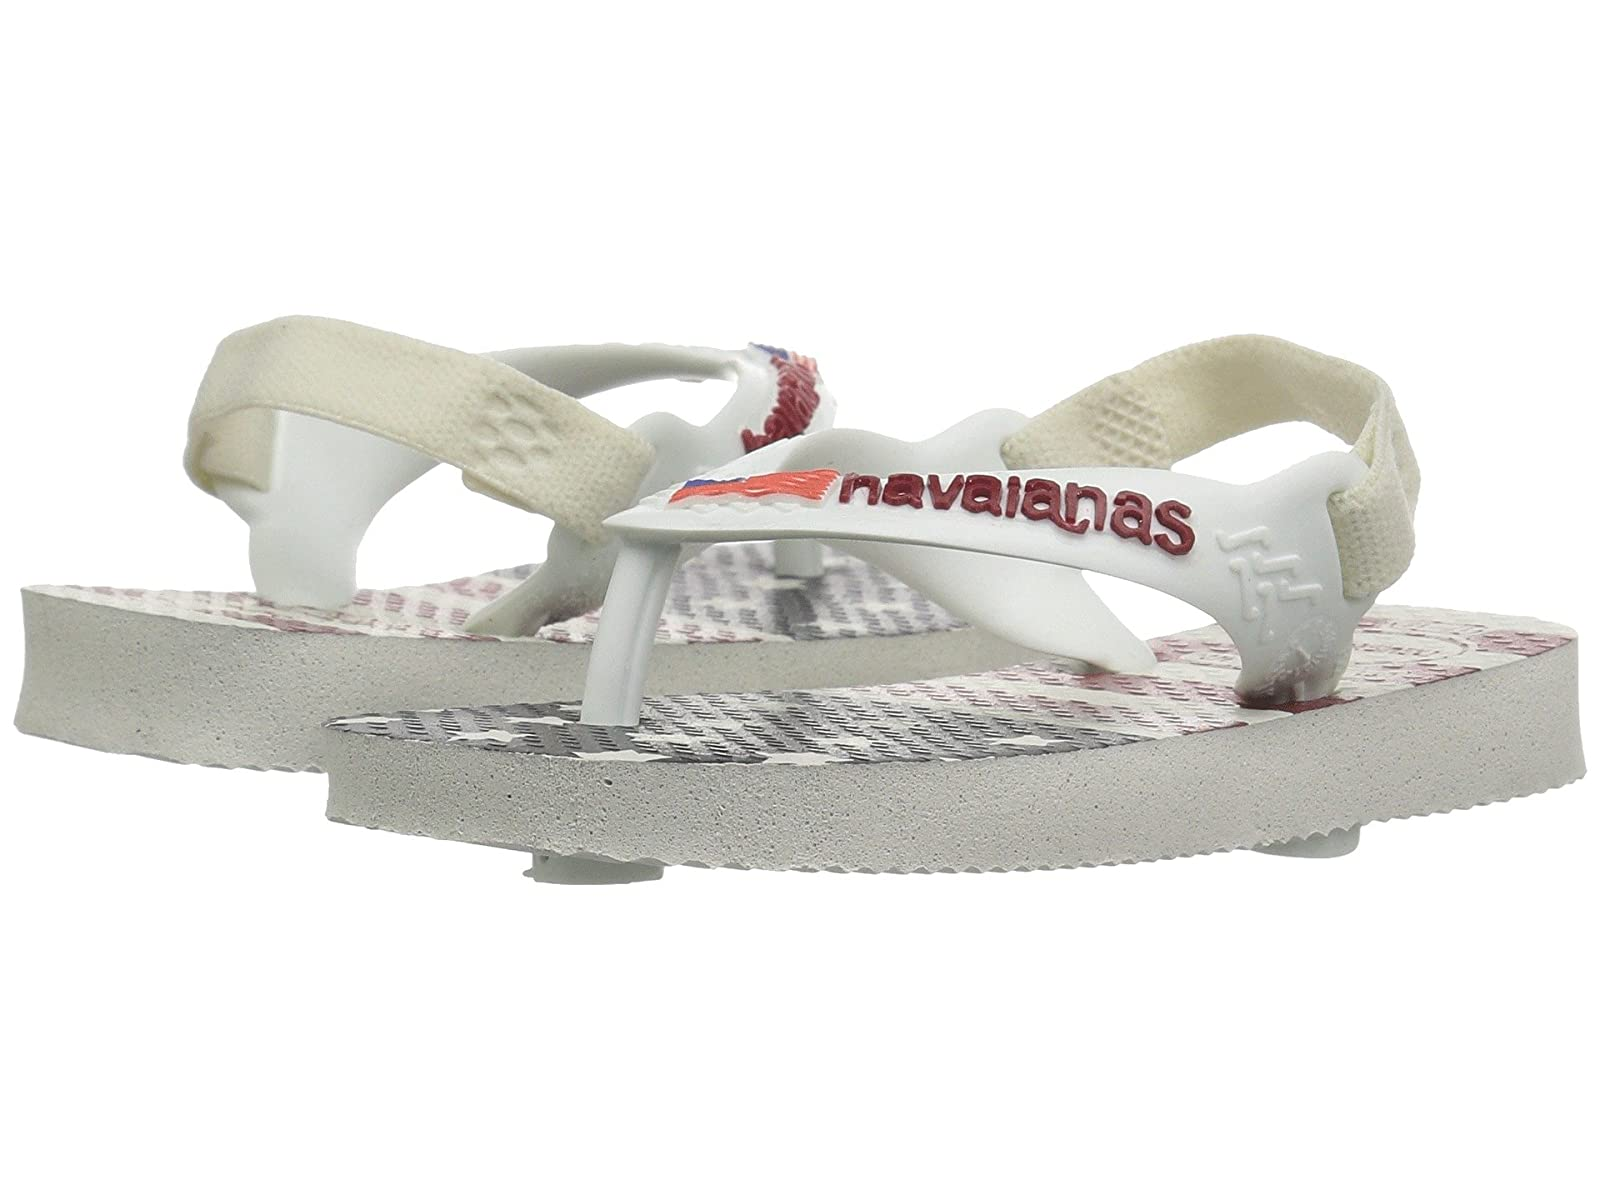 Havaianas Kids USA Sandals (Toddler)Atmospheric grades have affordable shoes